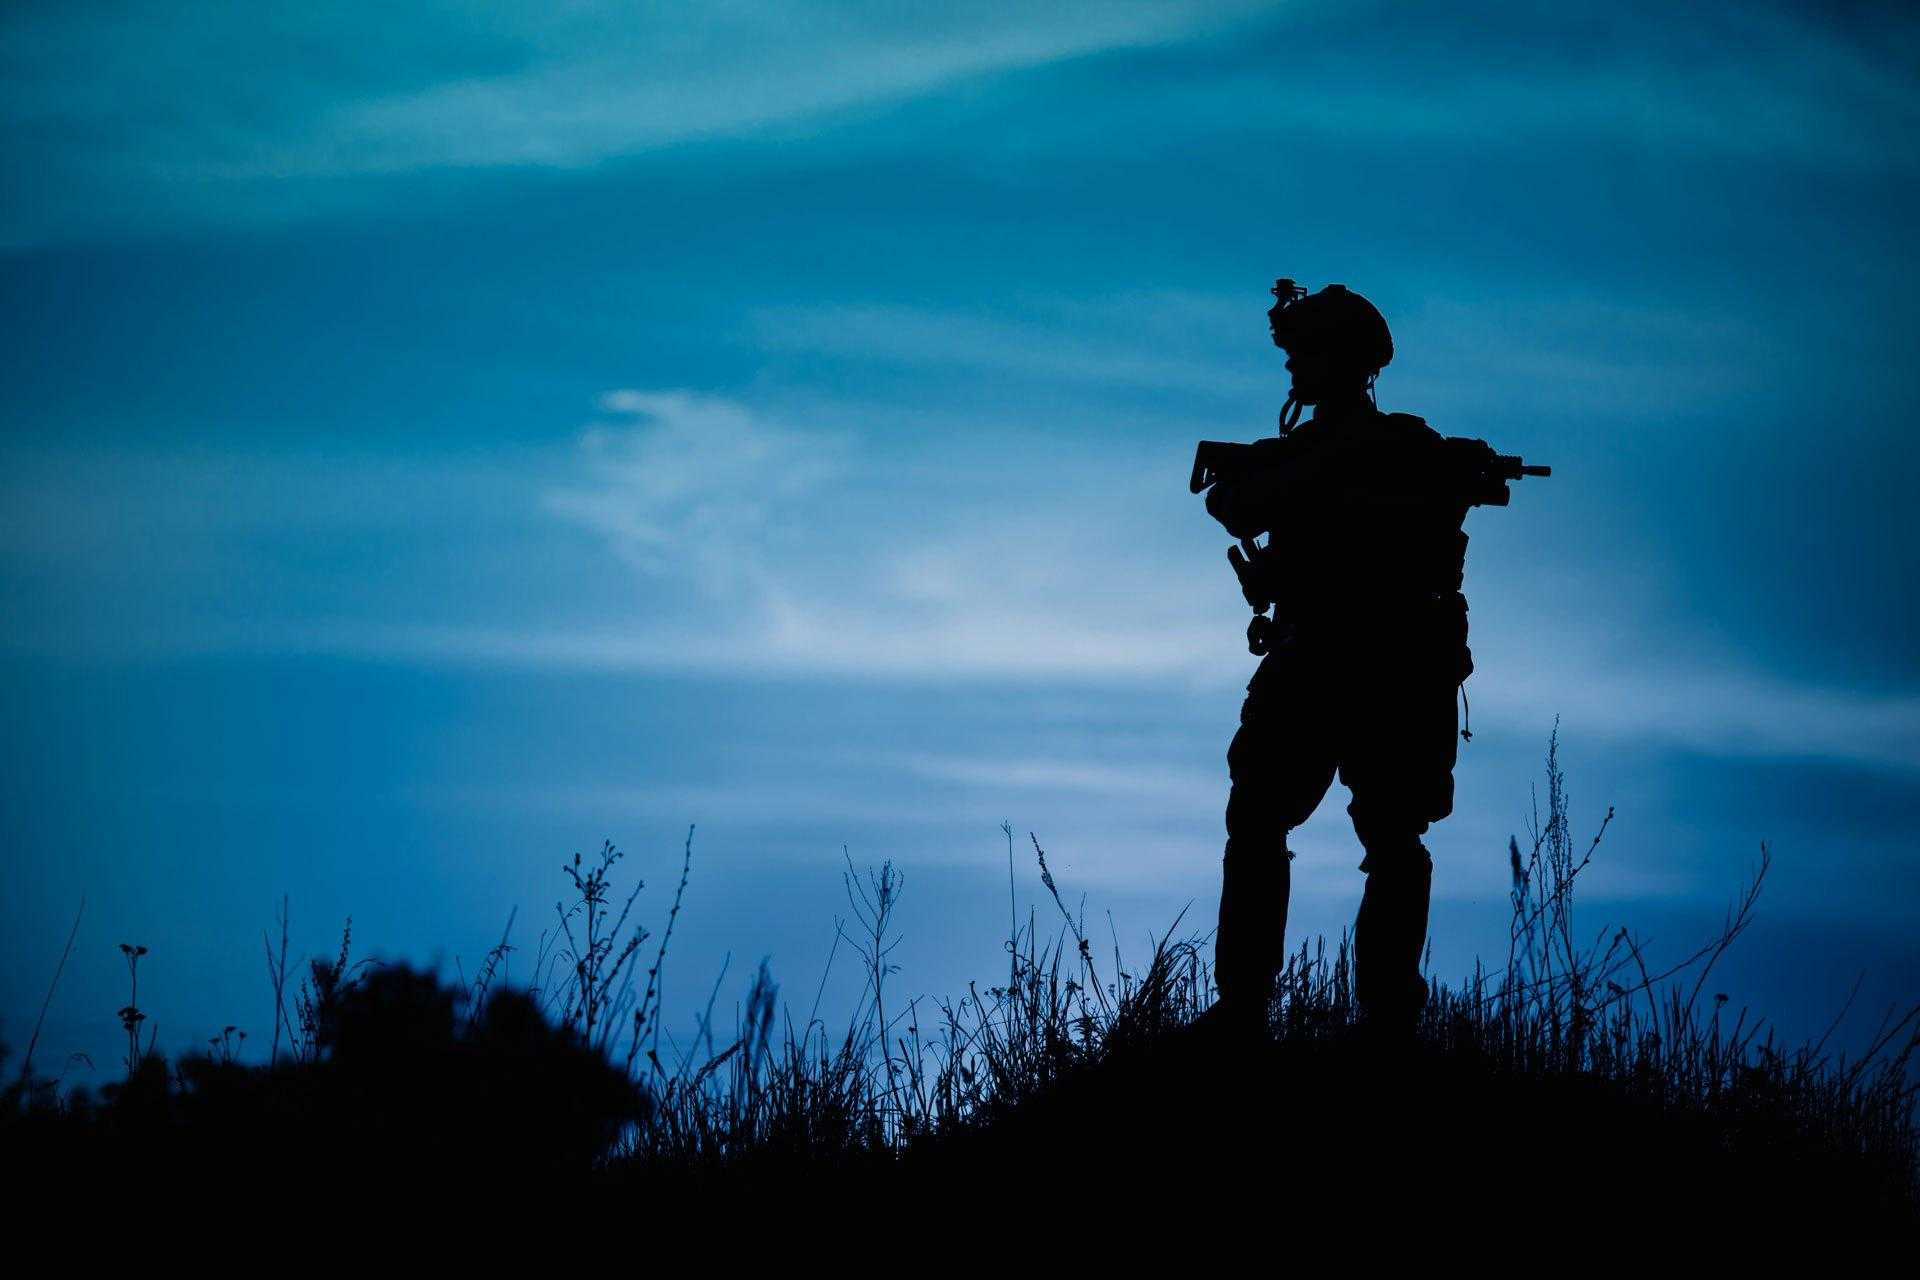 What Causes Post-traumatic Stress Disorder?